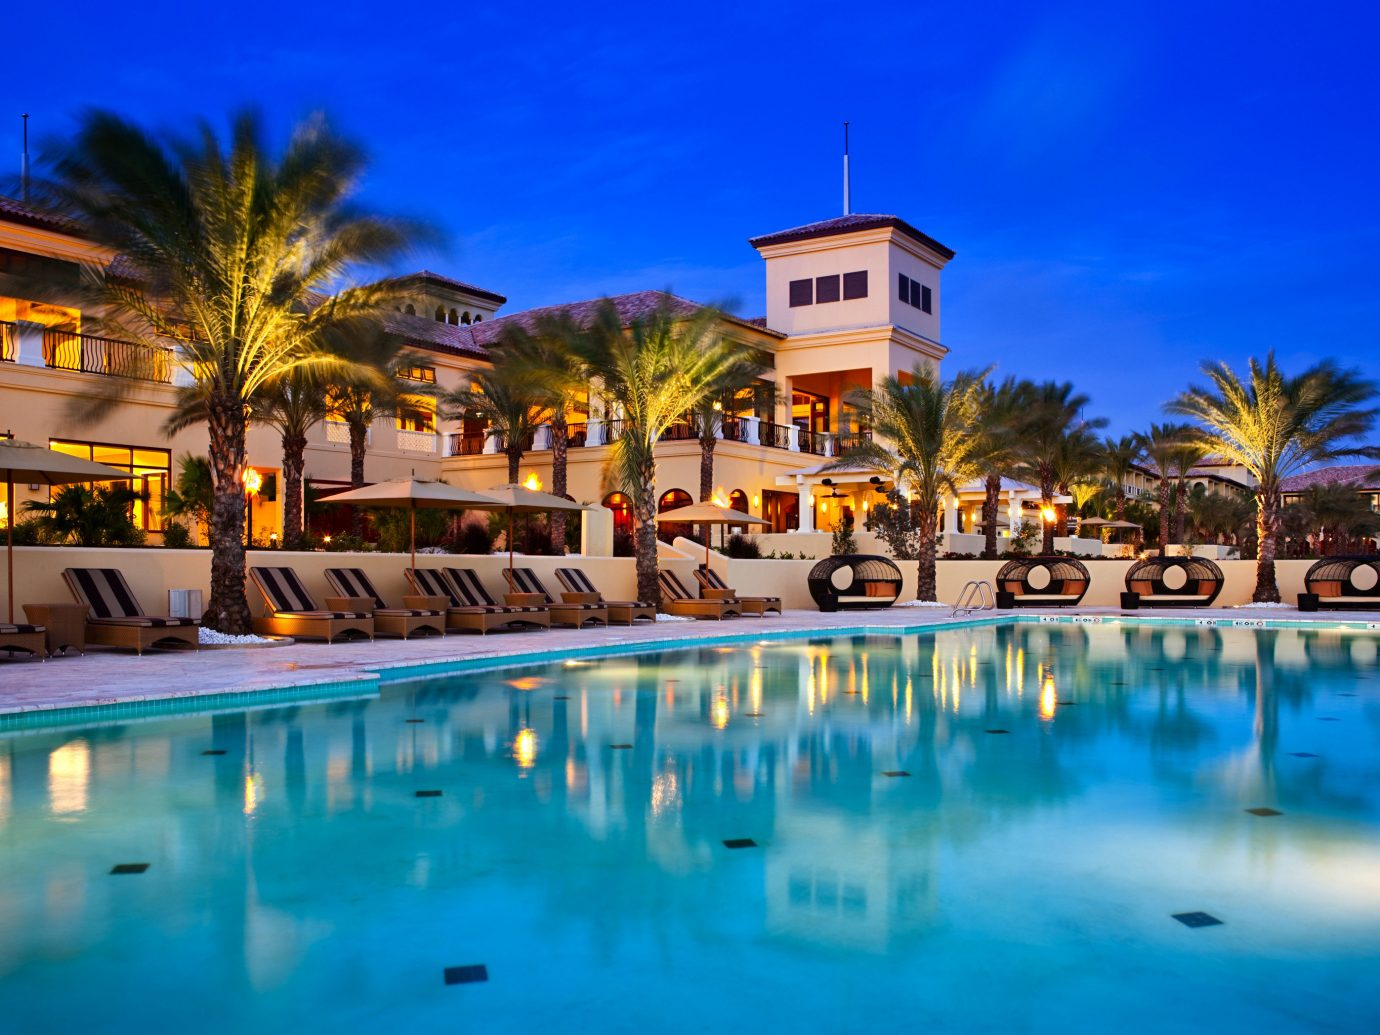 All-Inclusive Resorts Hotels Trip Ideas sky outdoor Resort water leisure reflection swimming pool resort town palm tree arecales vacation hotel real estate estate tourism evening tropics Harbor Villa home caribbean tree computer wallpaper lined